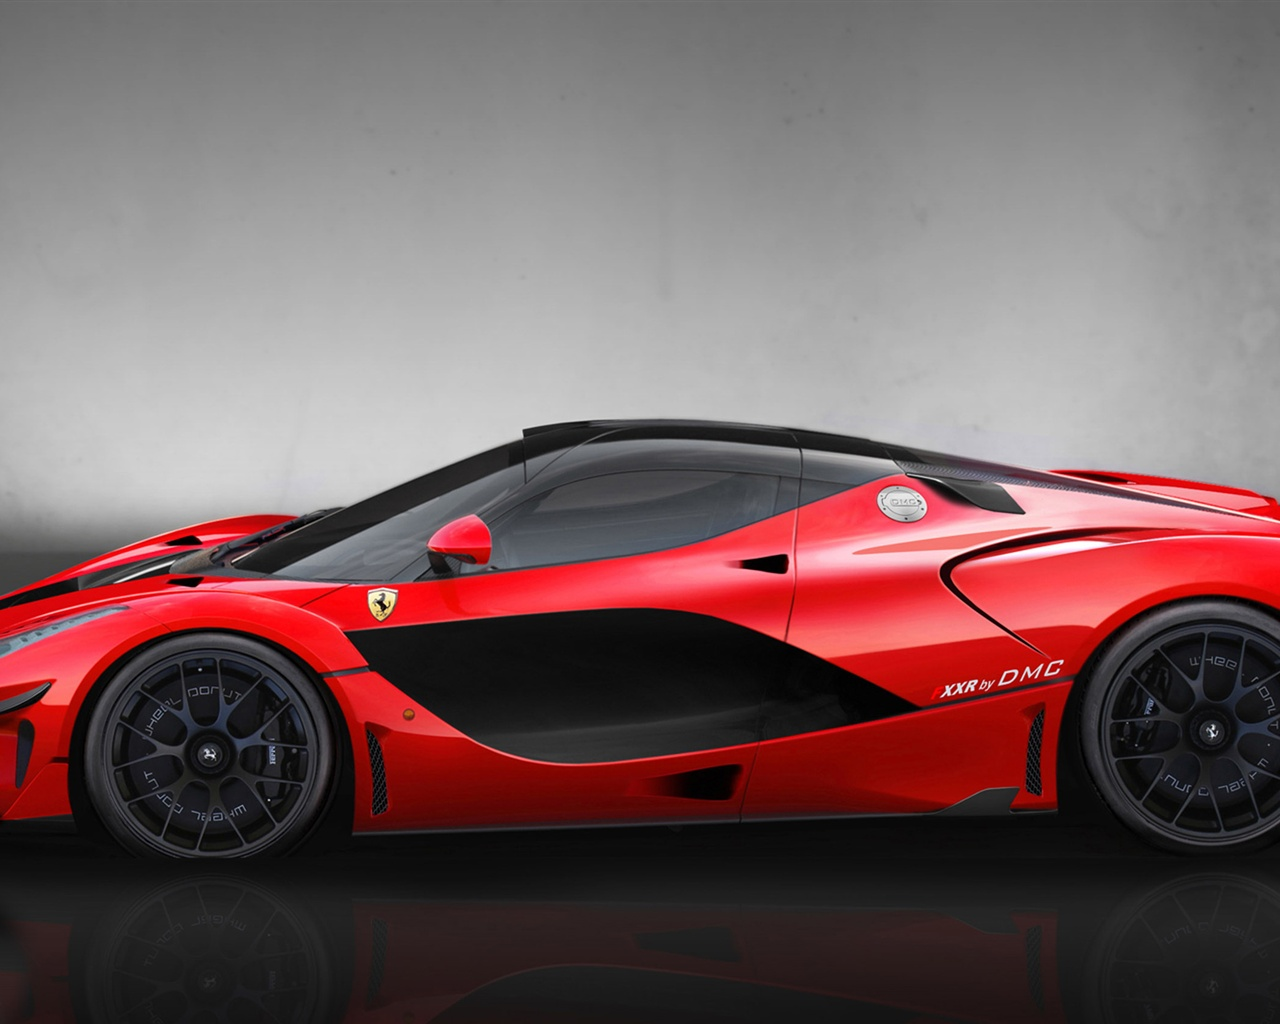 Red supercar DMC LaFerrari FXXR side view Wallpaper 1280x1024 1280x1024